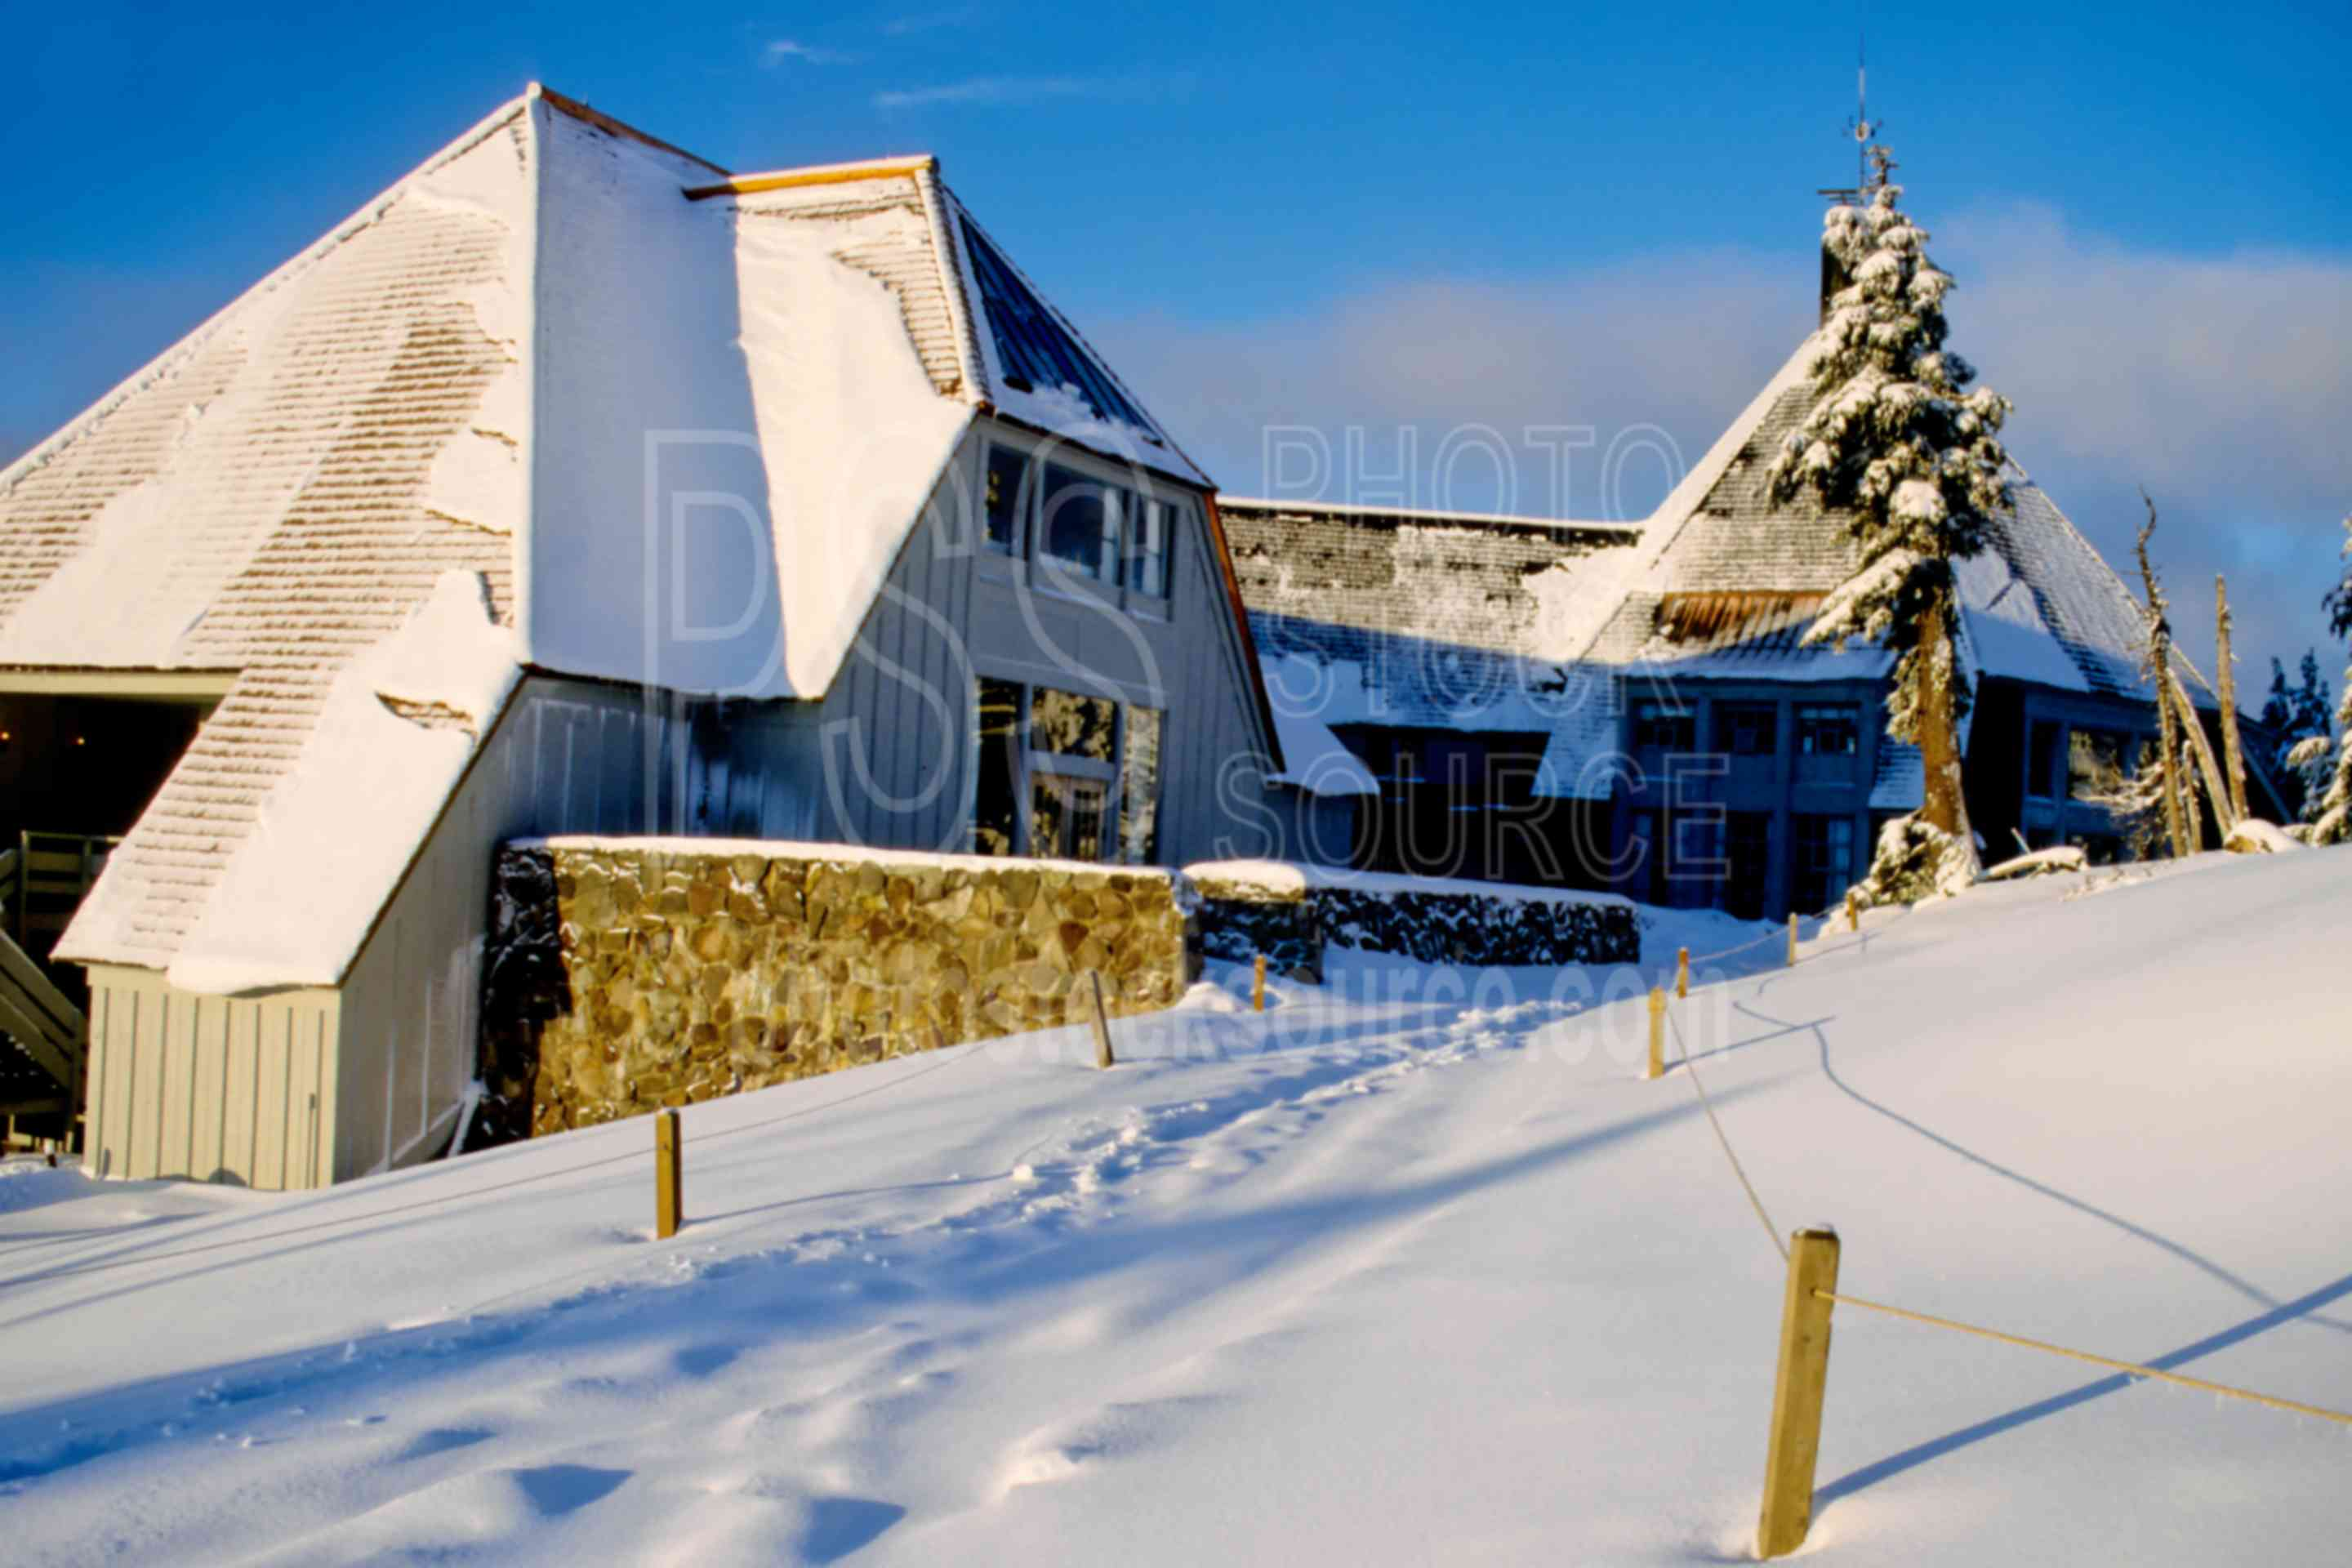 Timberline Lodge,morning,snow,mt. hood,winter,mountains